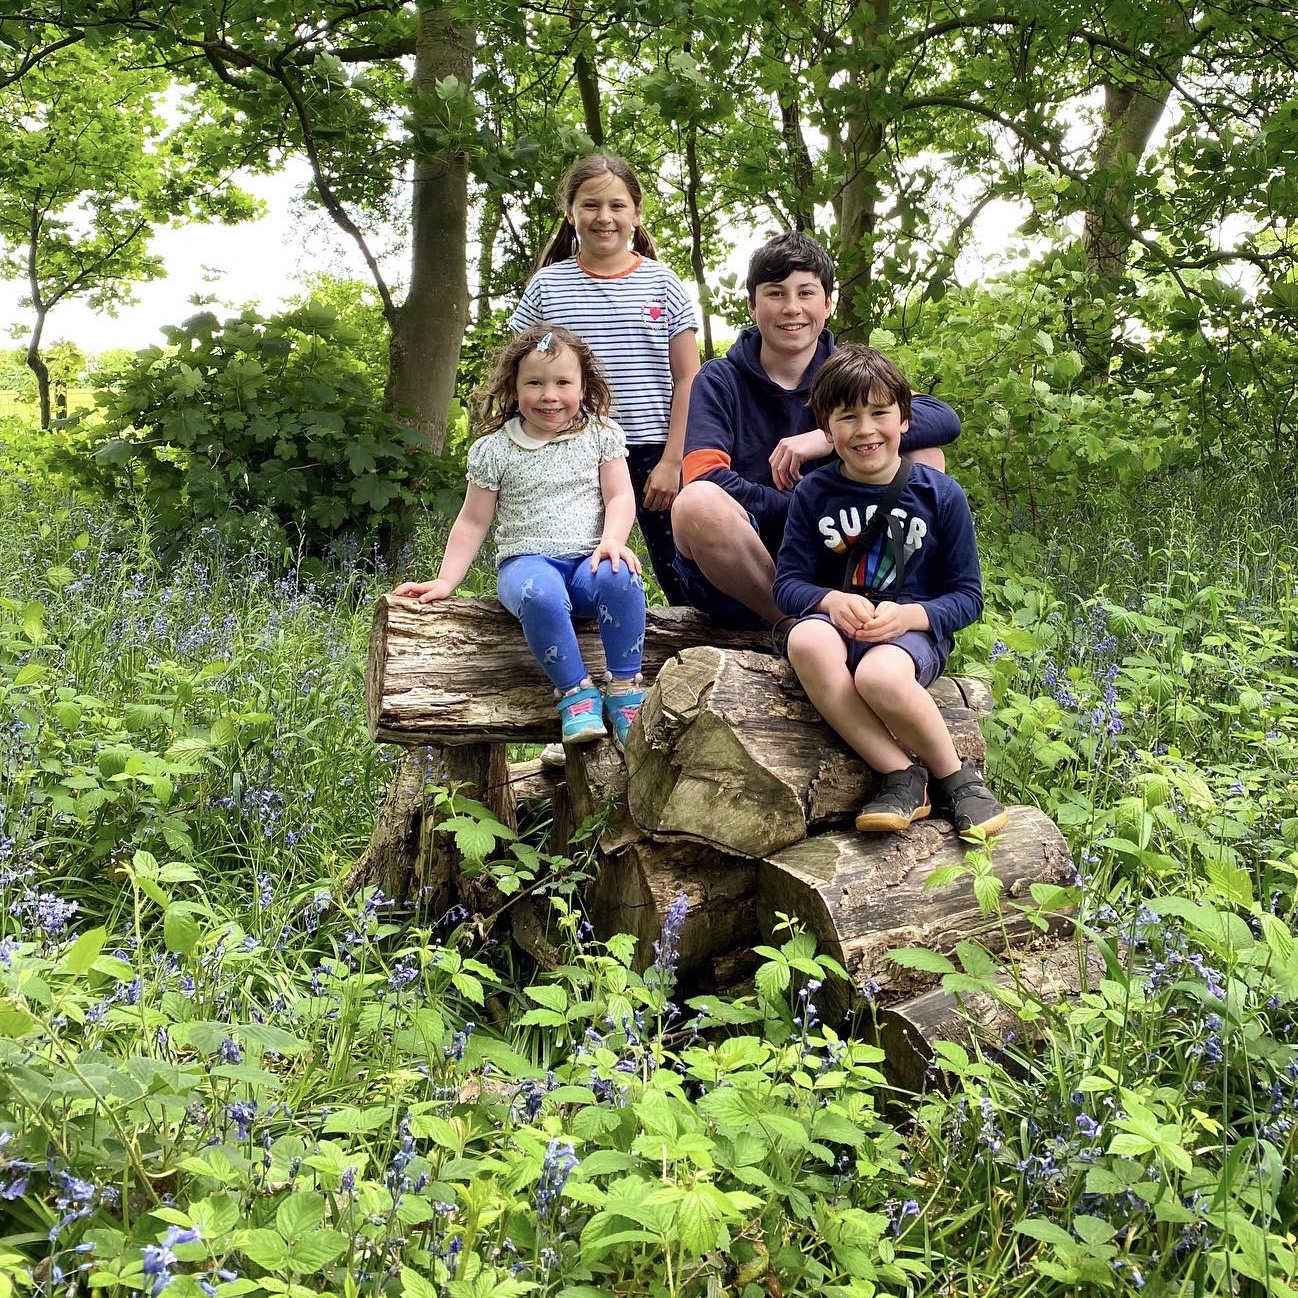 a bluebell wood walk with 4 children on a log